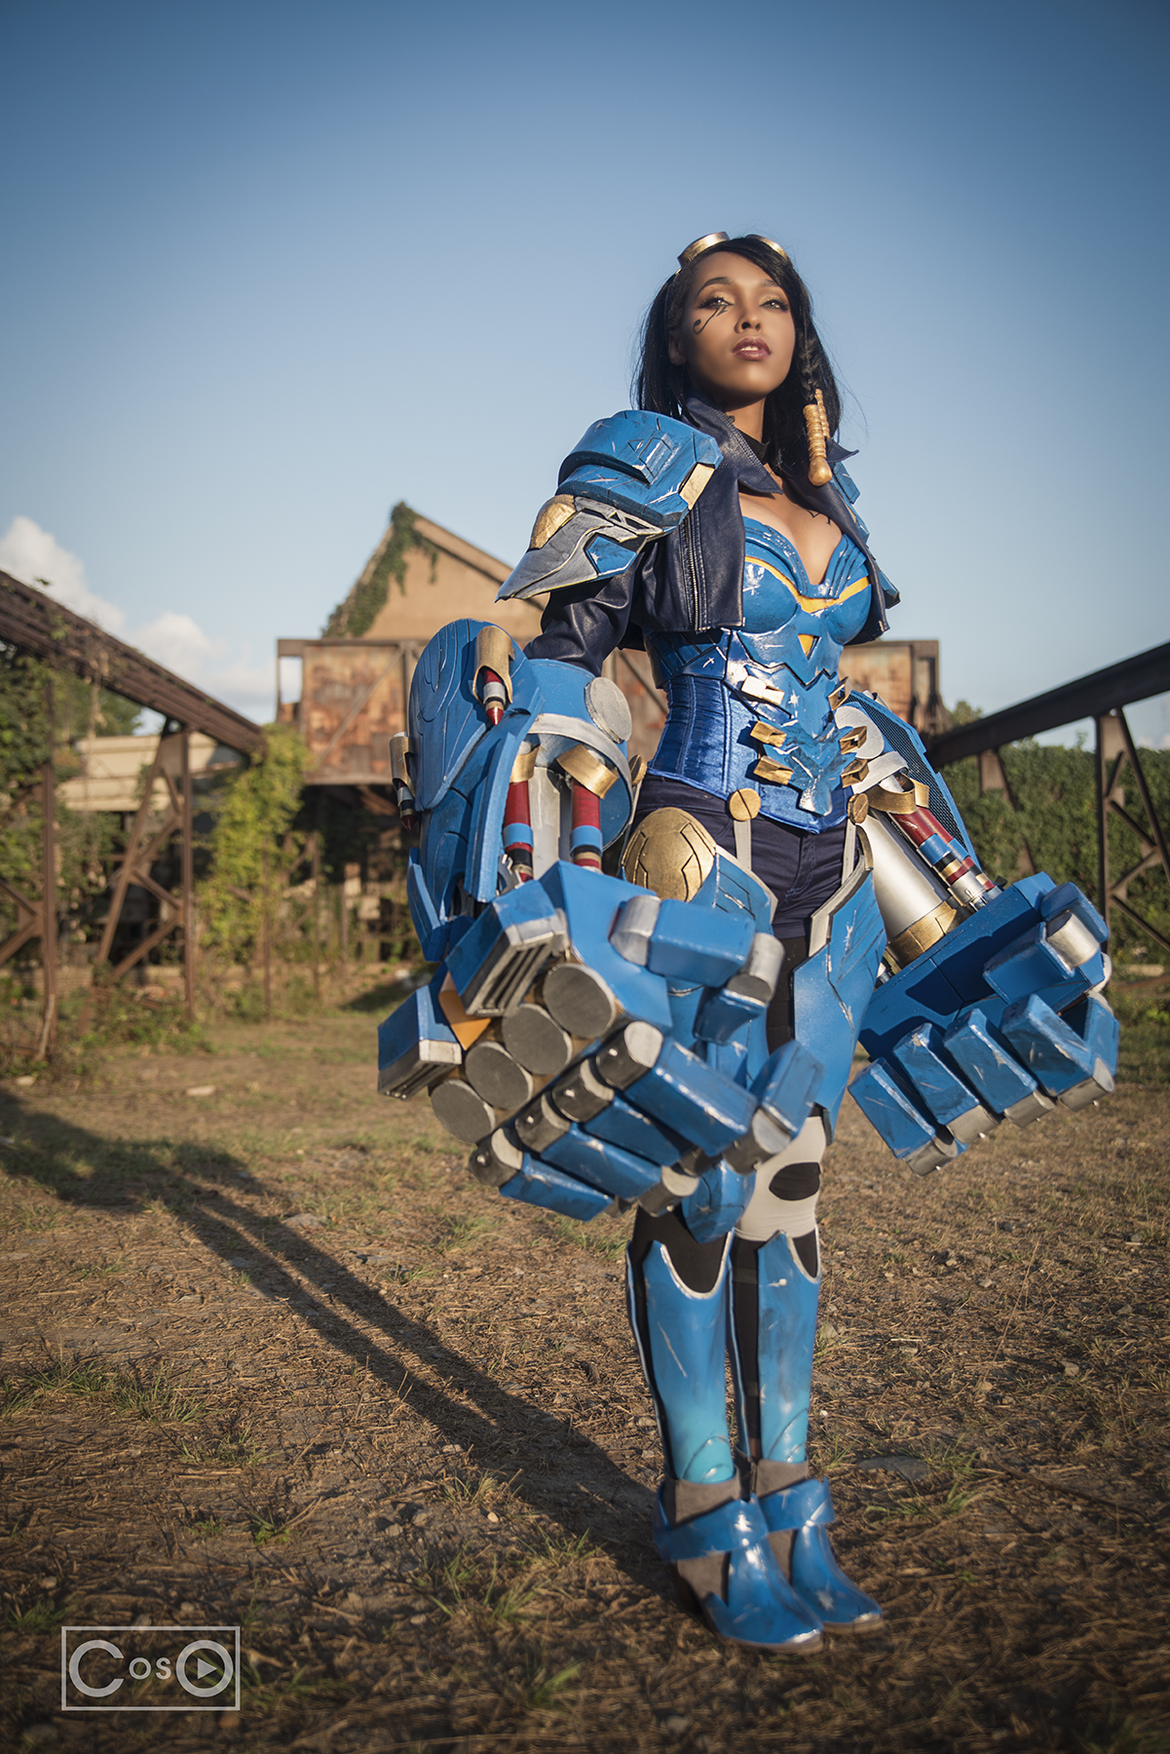 PharahVi Jasmine Mackey cosplay